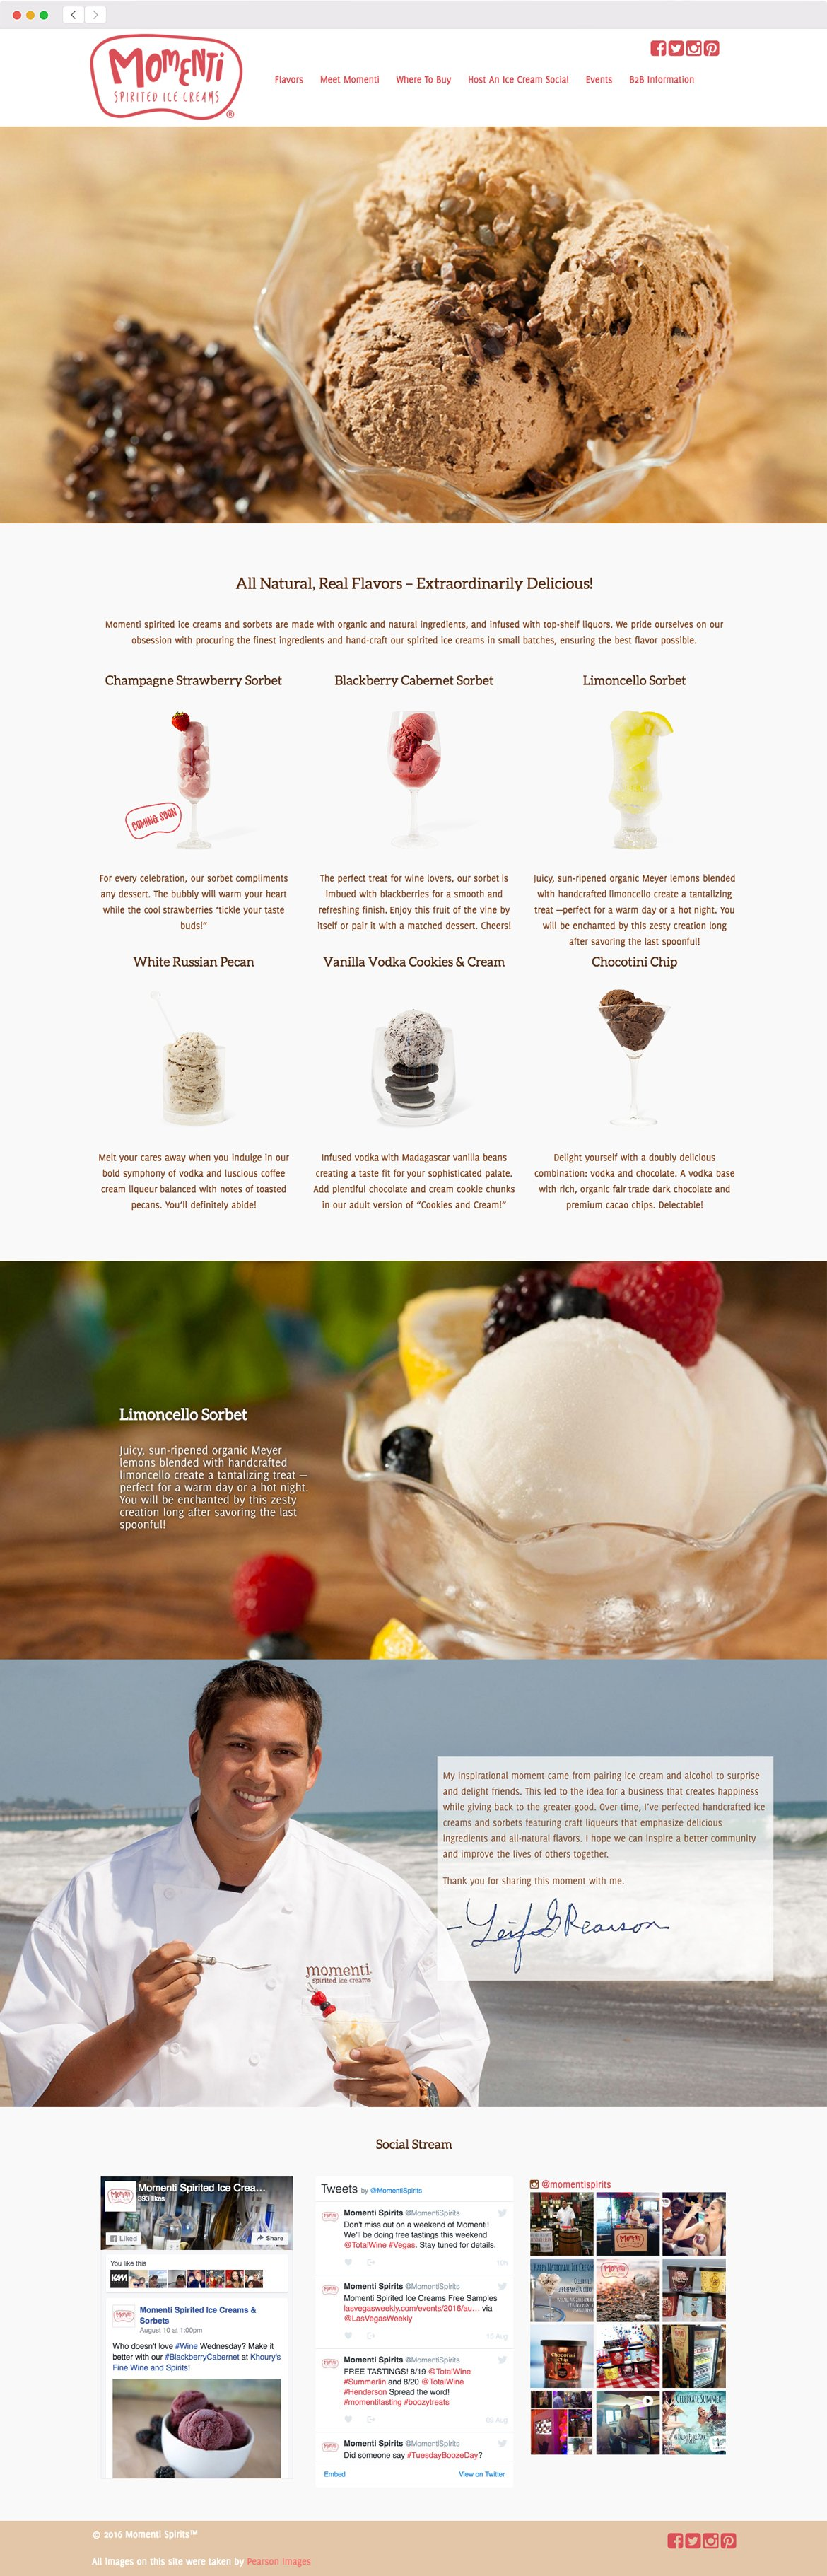 Momenti Spirited Ice Cream Web